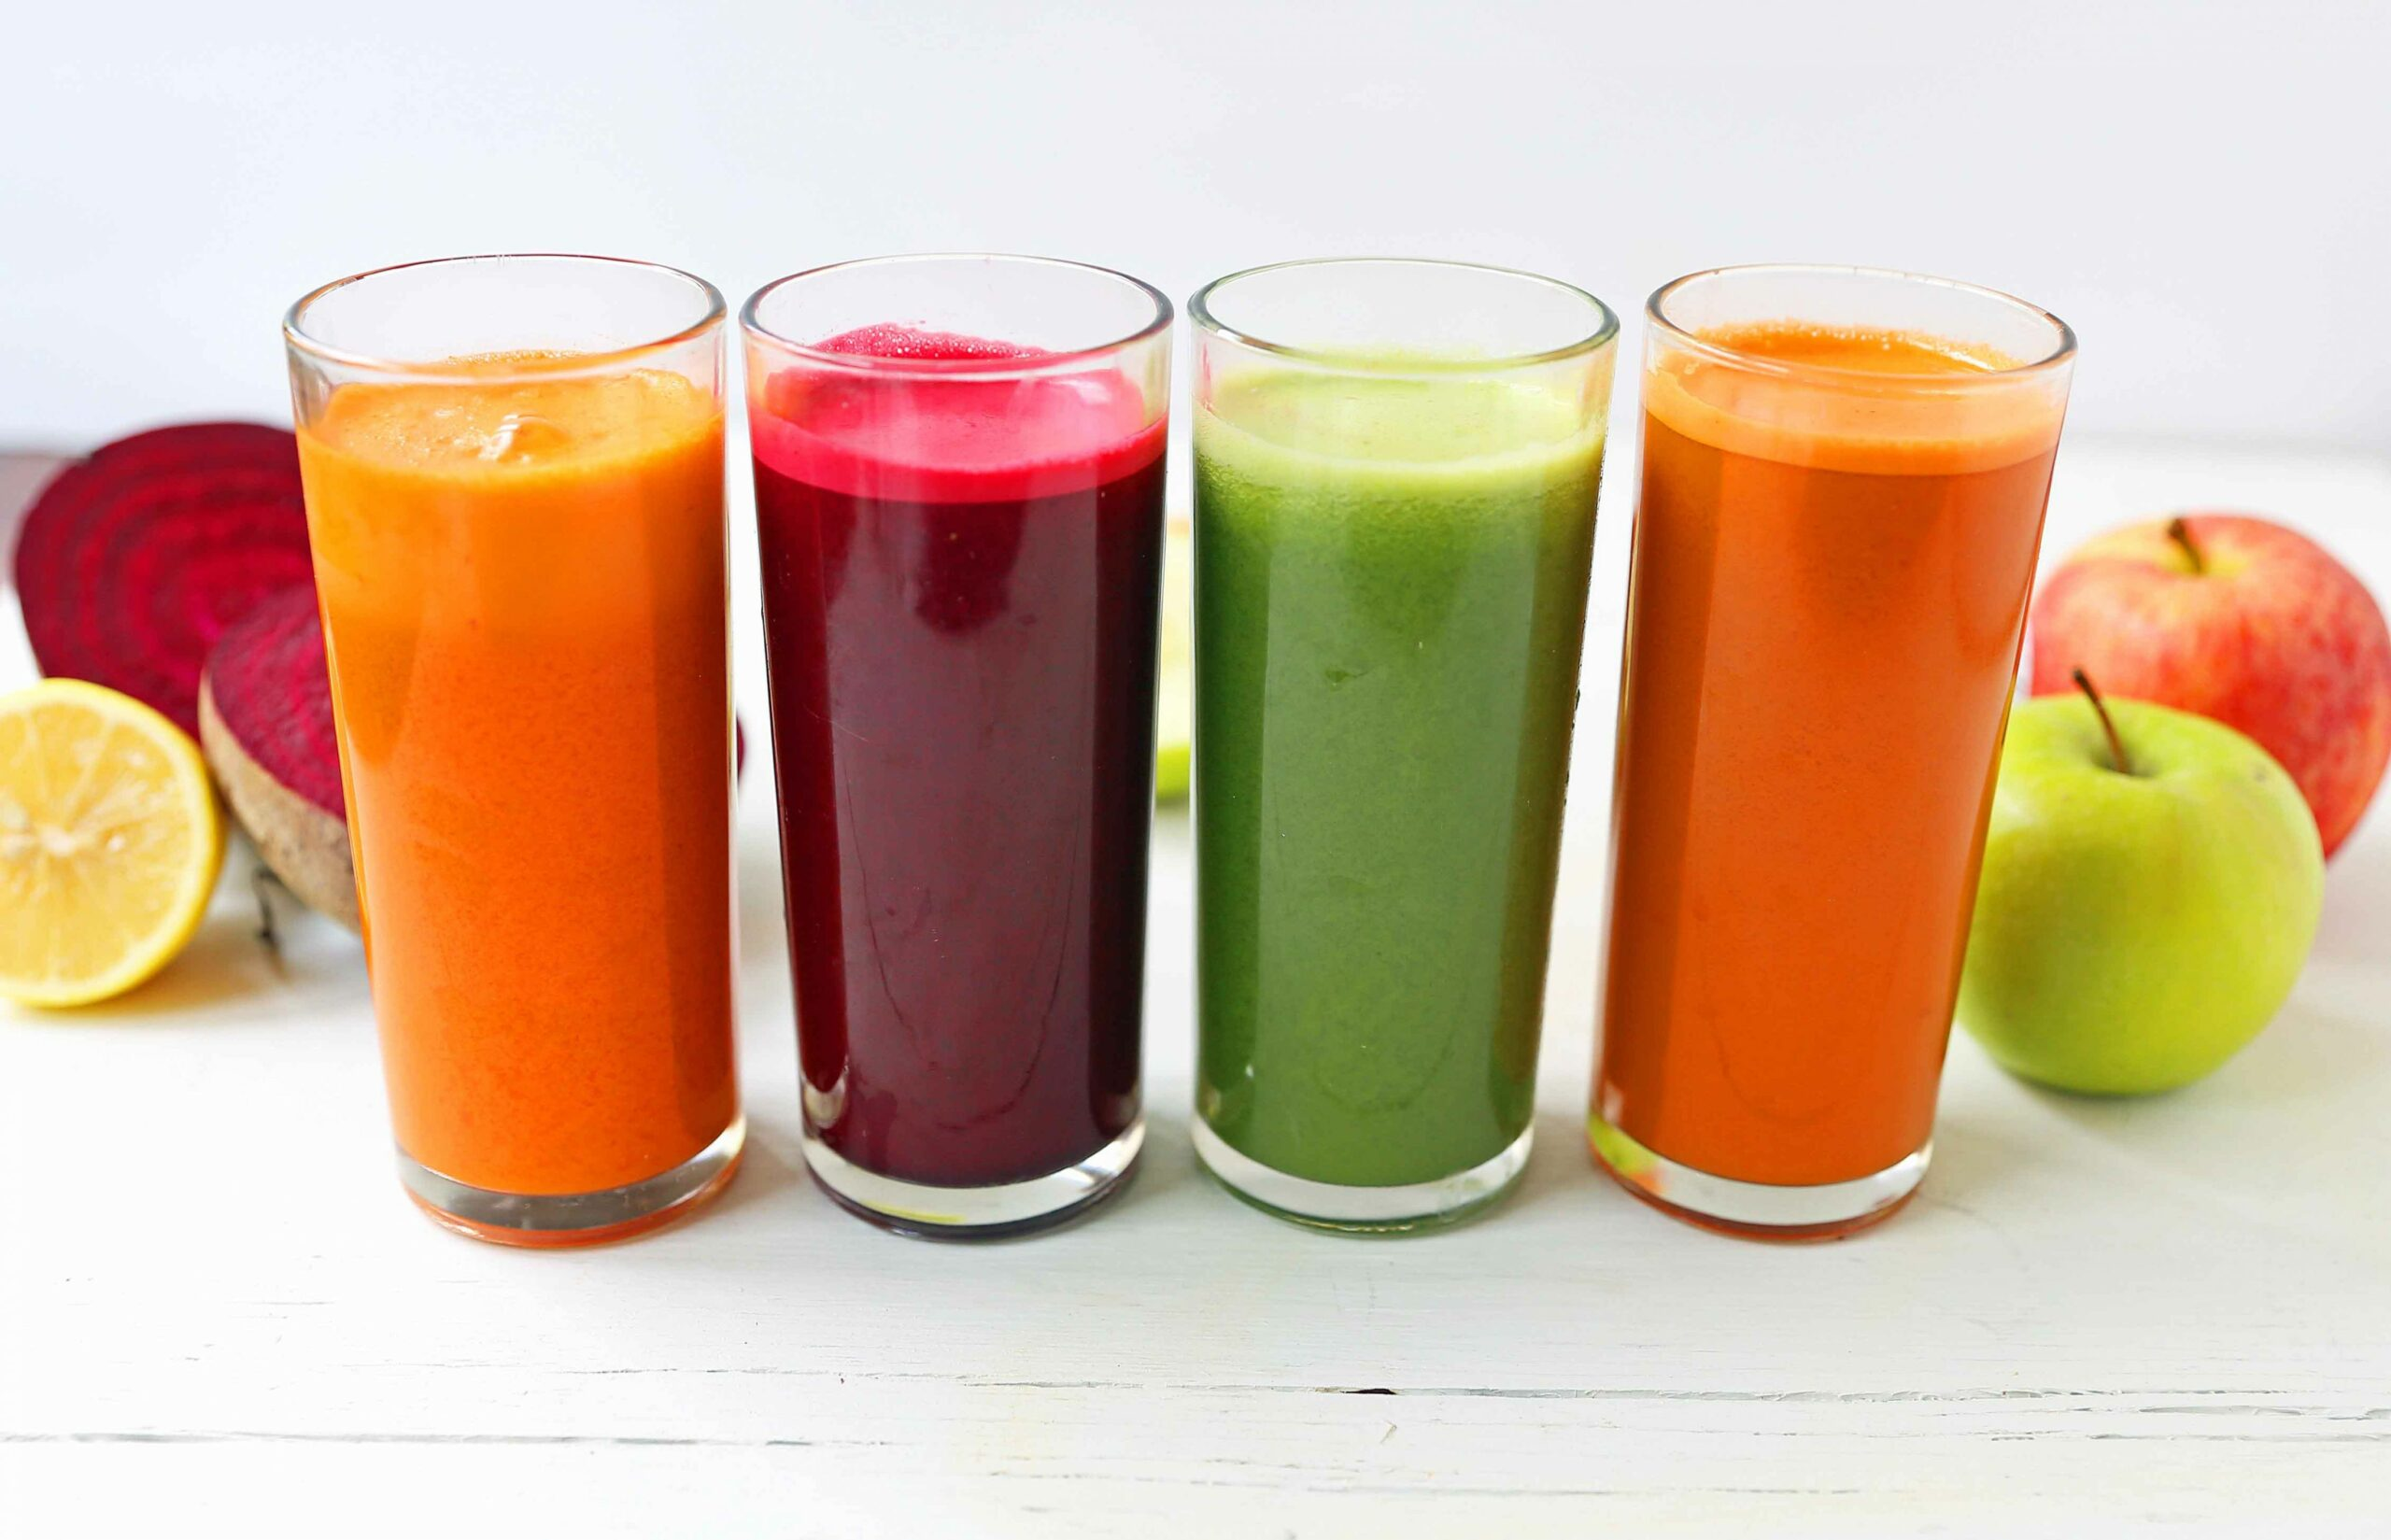 Healthy Juice Cleanse Recipes - Juice Recipes For Weight Loss And Energy